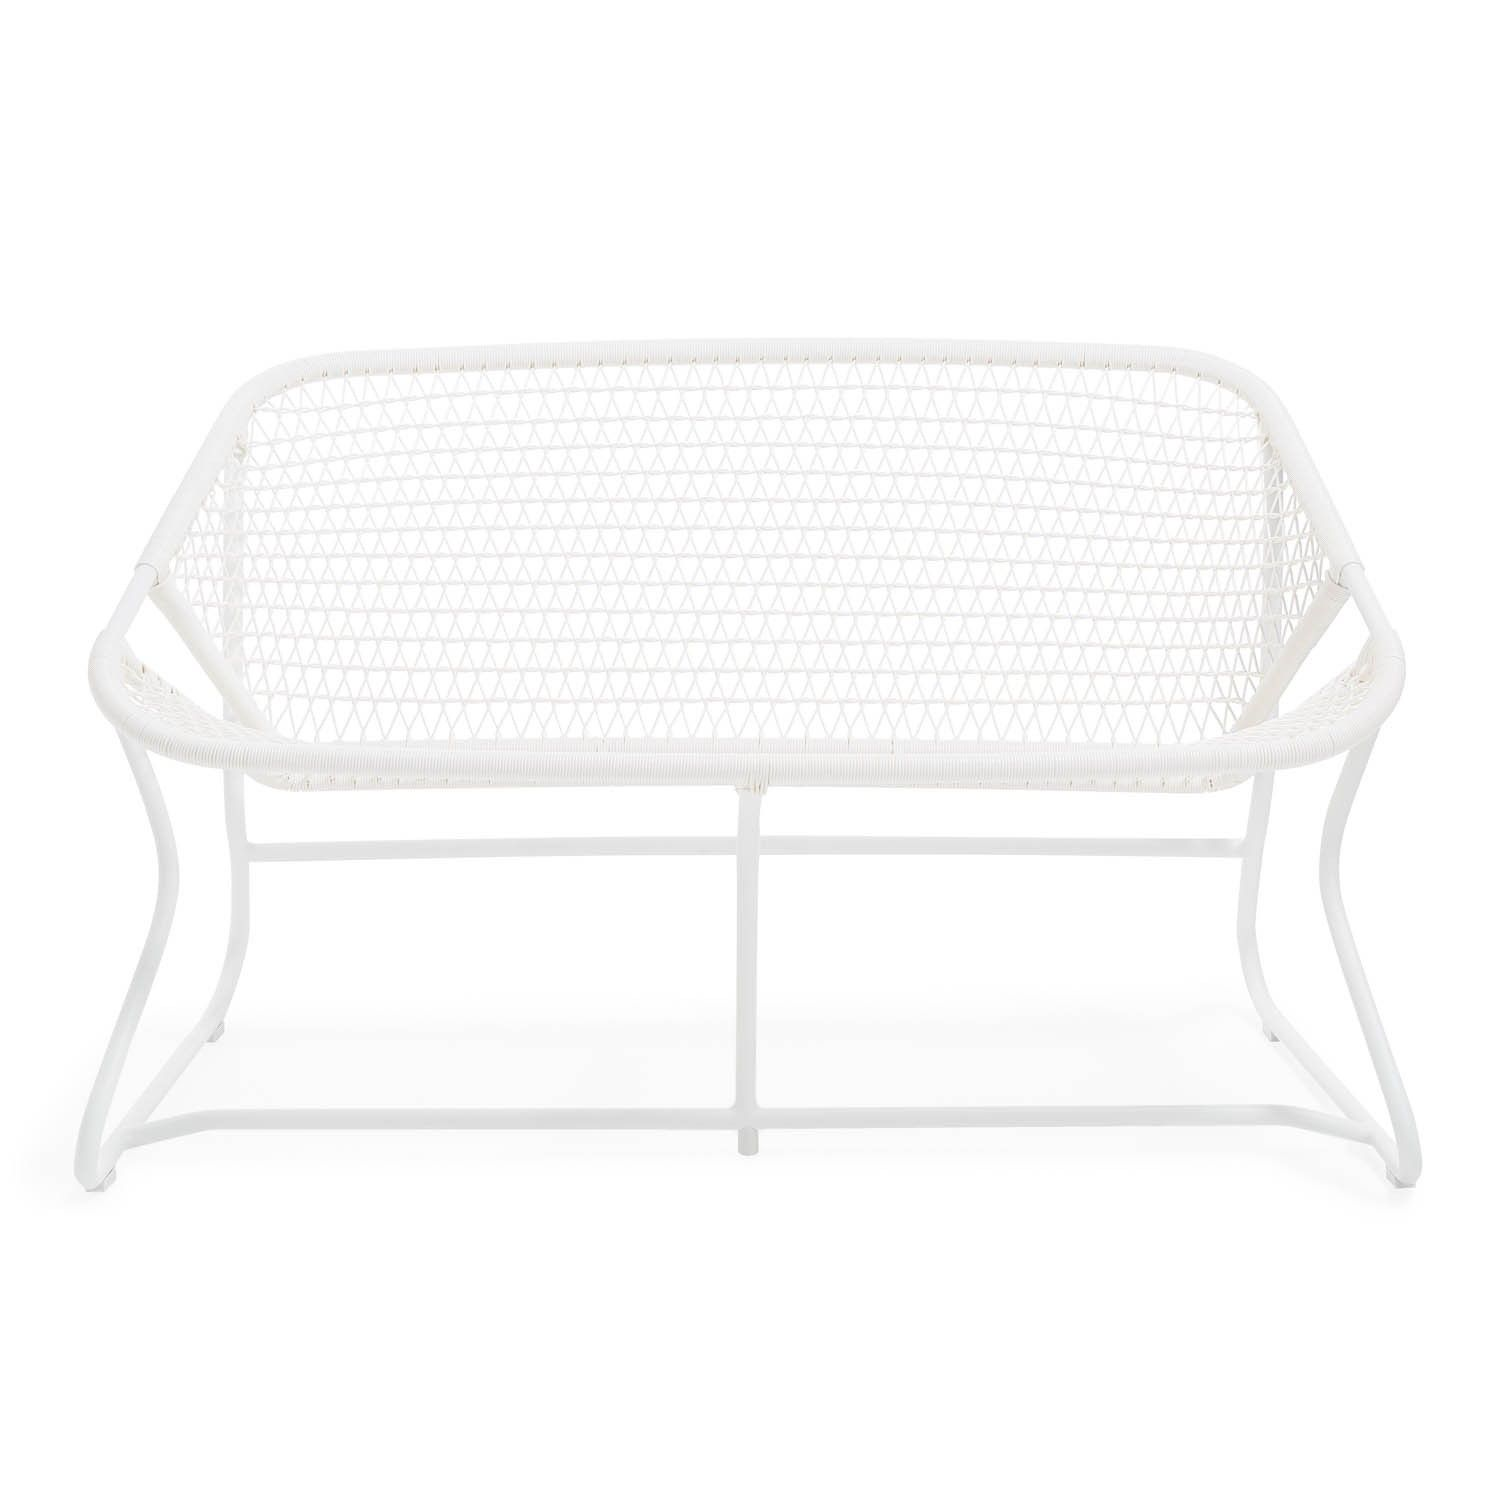 velvet size and cheap loveseat for king chairs baby shower maryland white throne brooklyn full sale indoor black rentals chair queen rental of